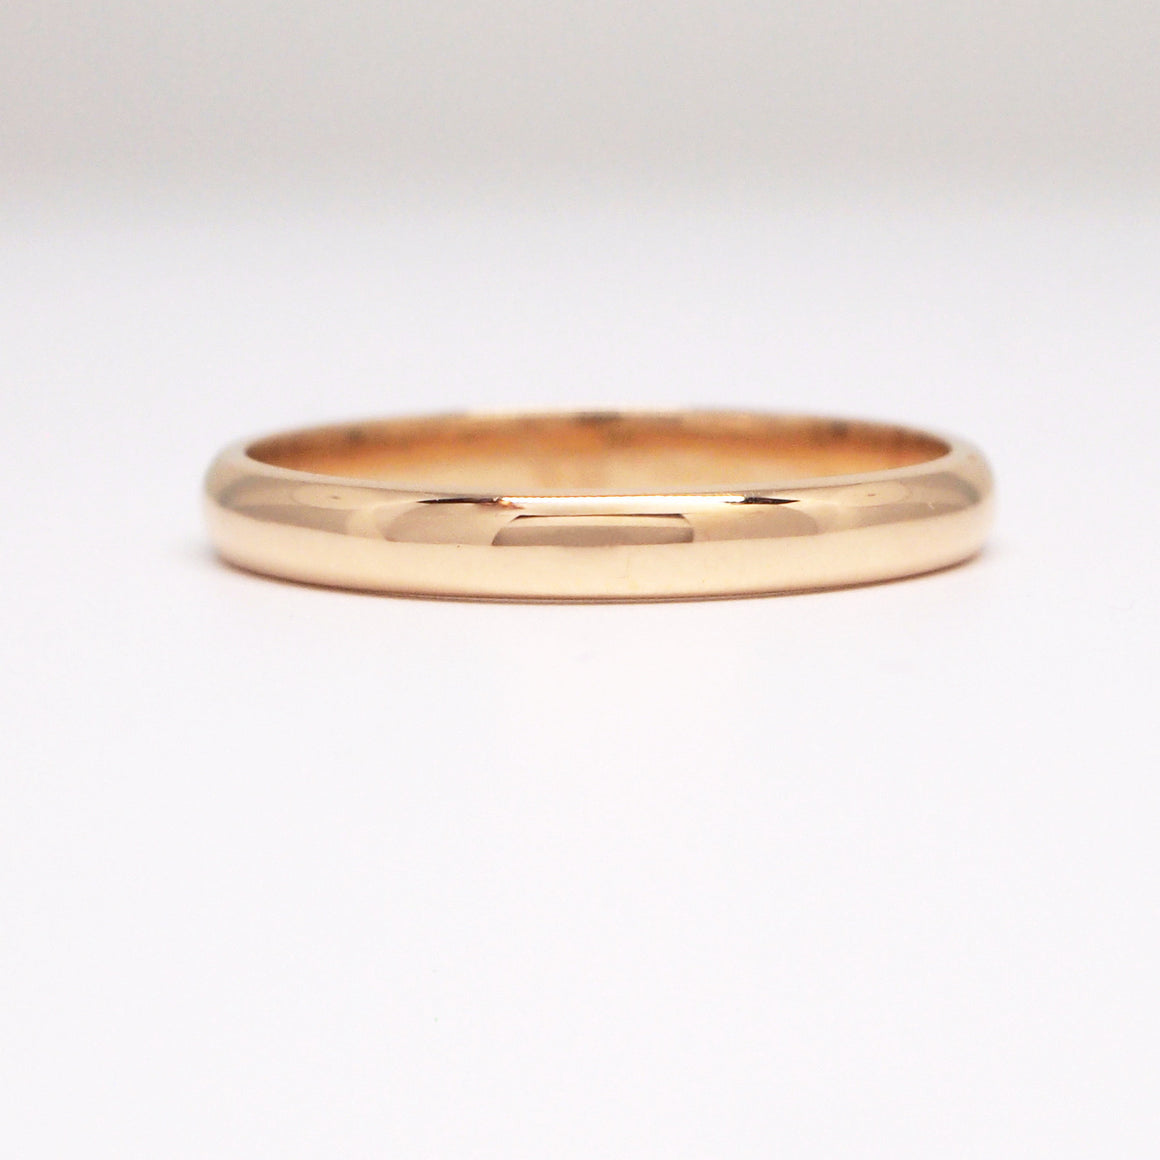 18K yellow gold 2.5mm half round wedding band.